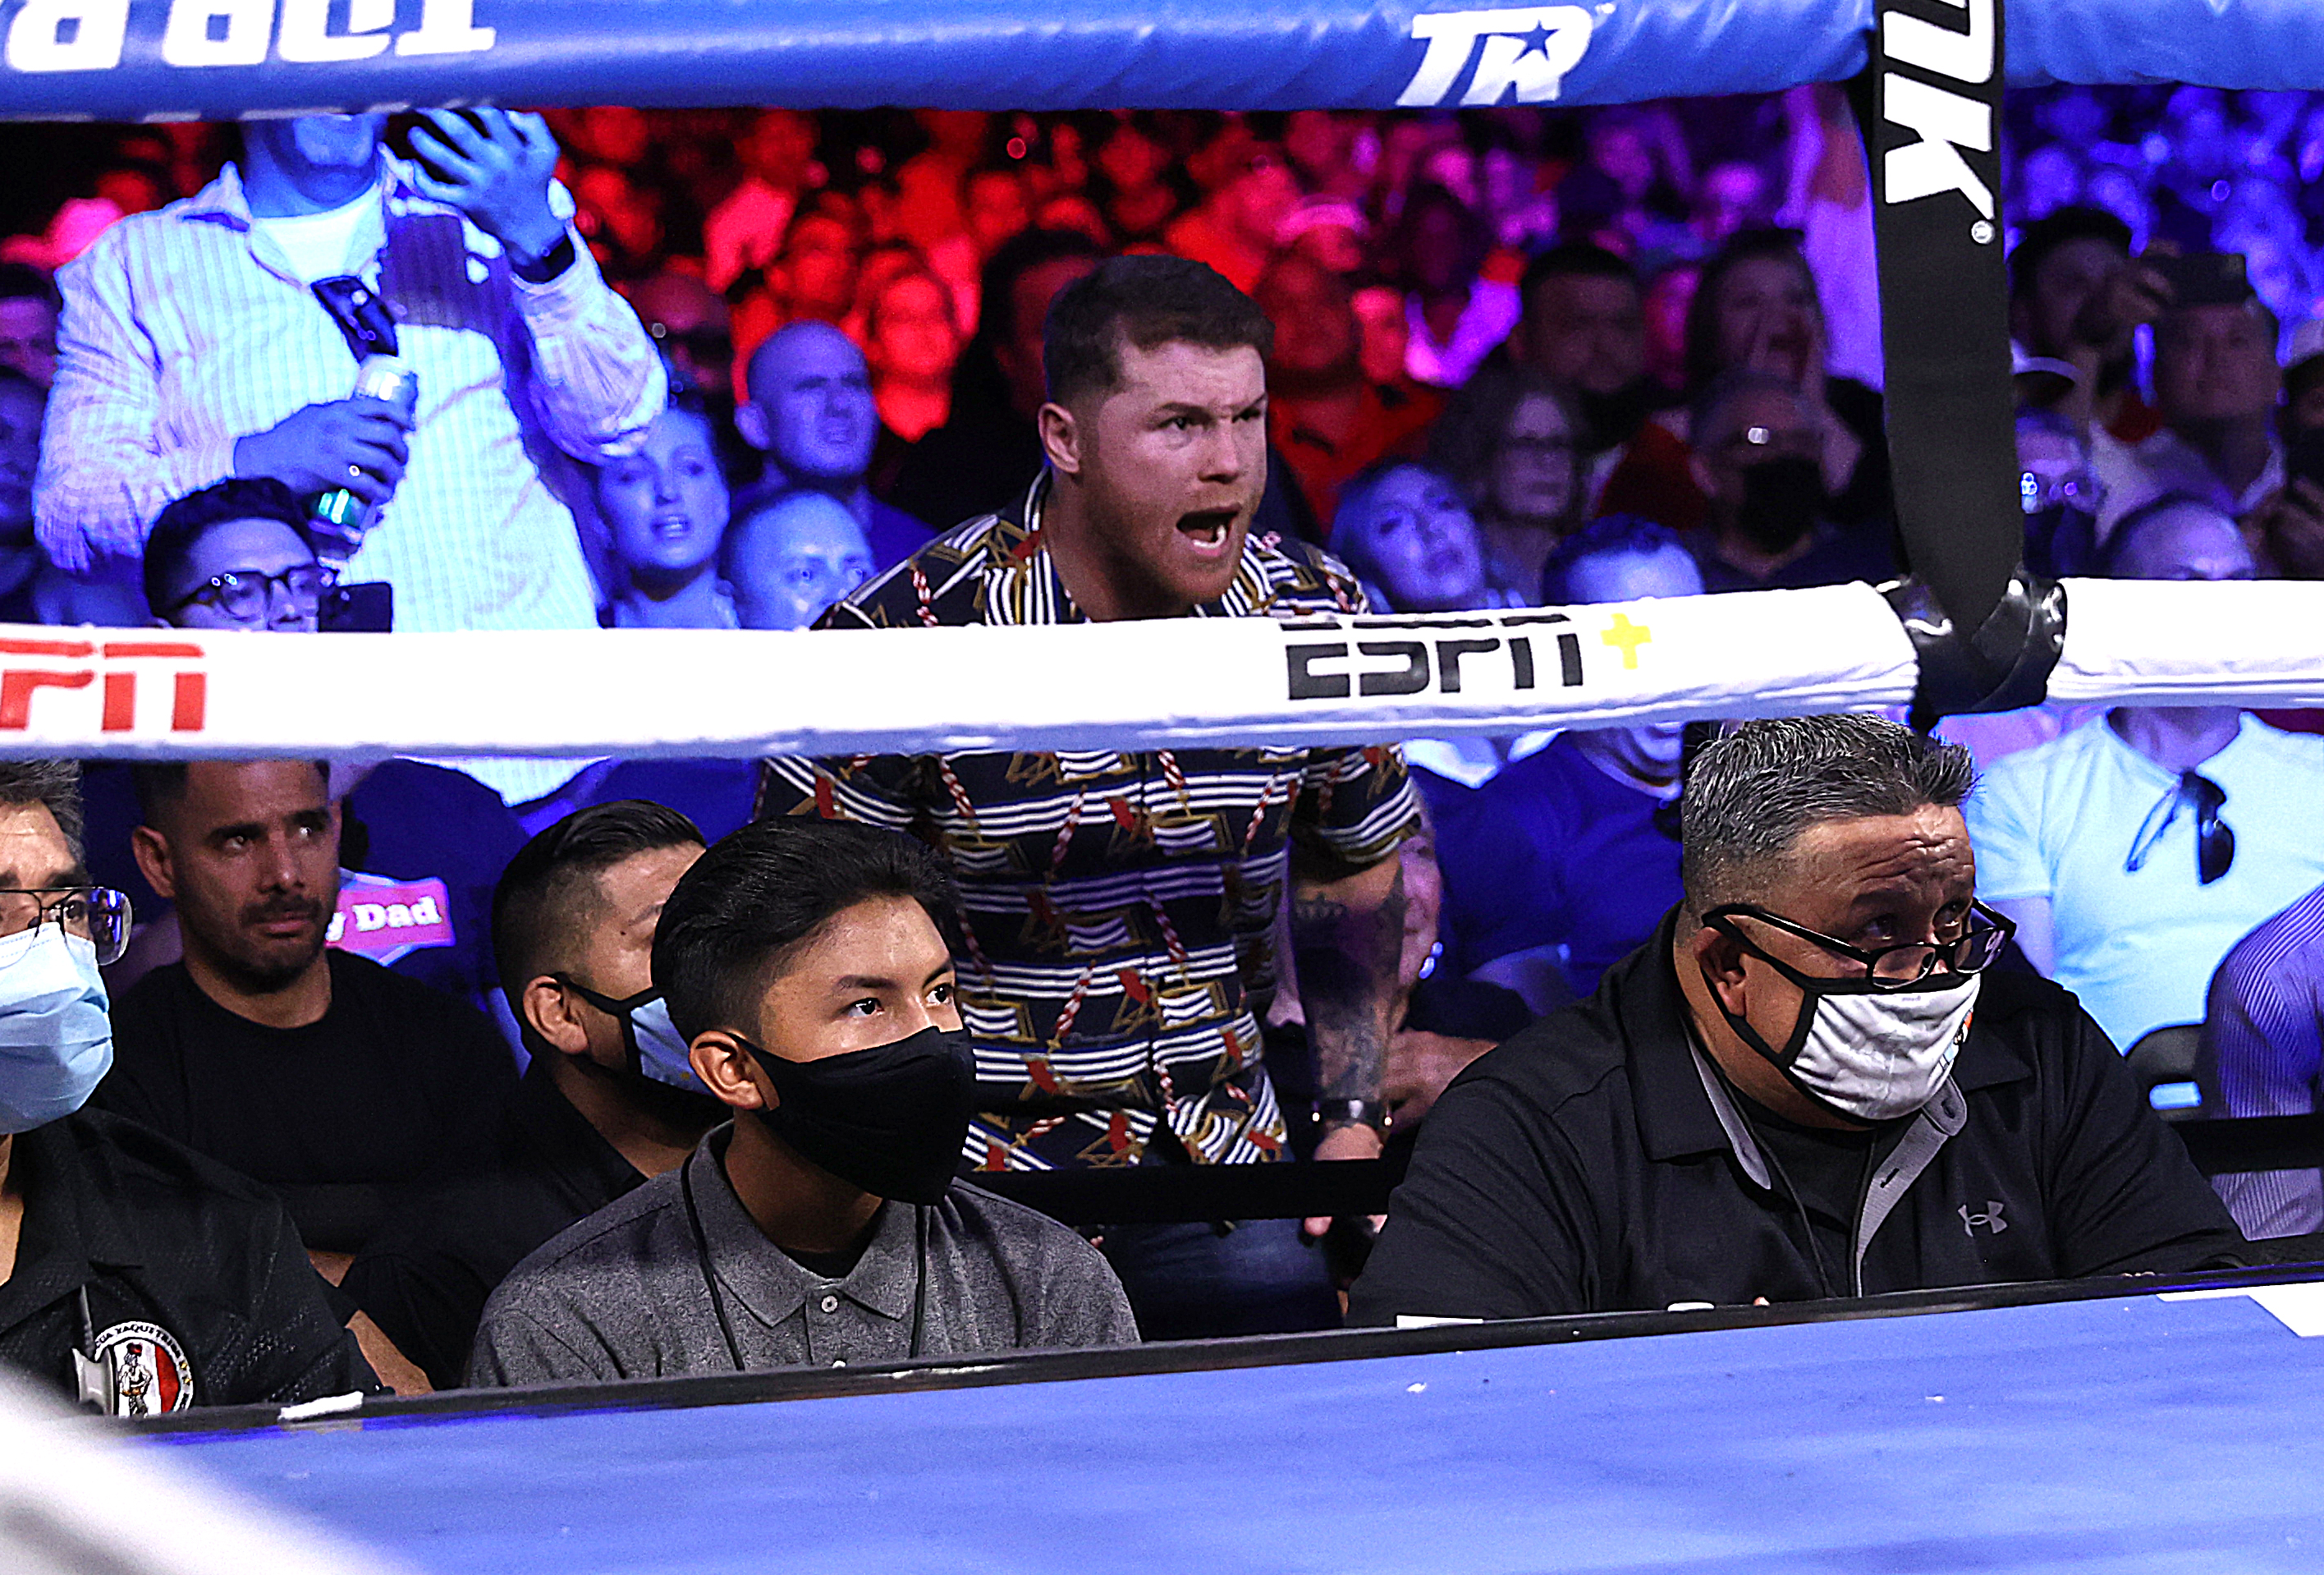 Canelo Alvarez cheering the fight night between WBC super featherweight champion Oscar Valdez and Robson Conceição at Casino del Sol on September 10, 2021 in Tucson, Arizona.